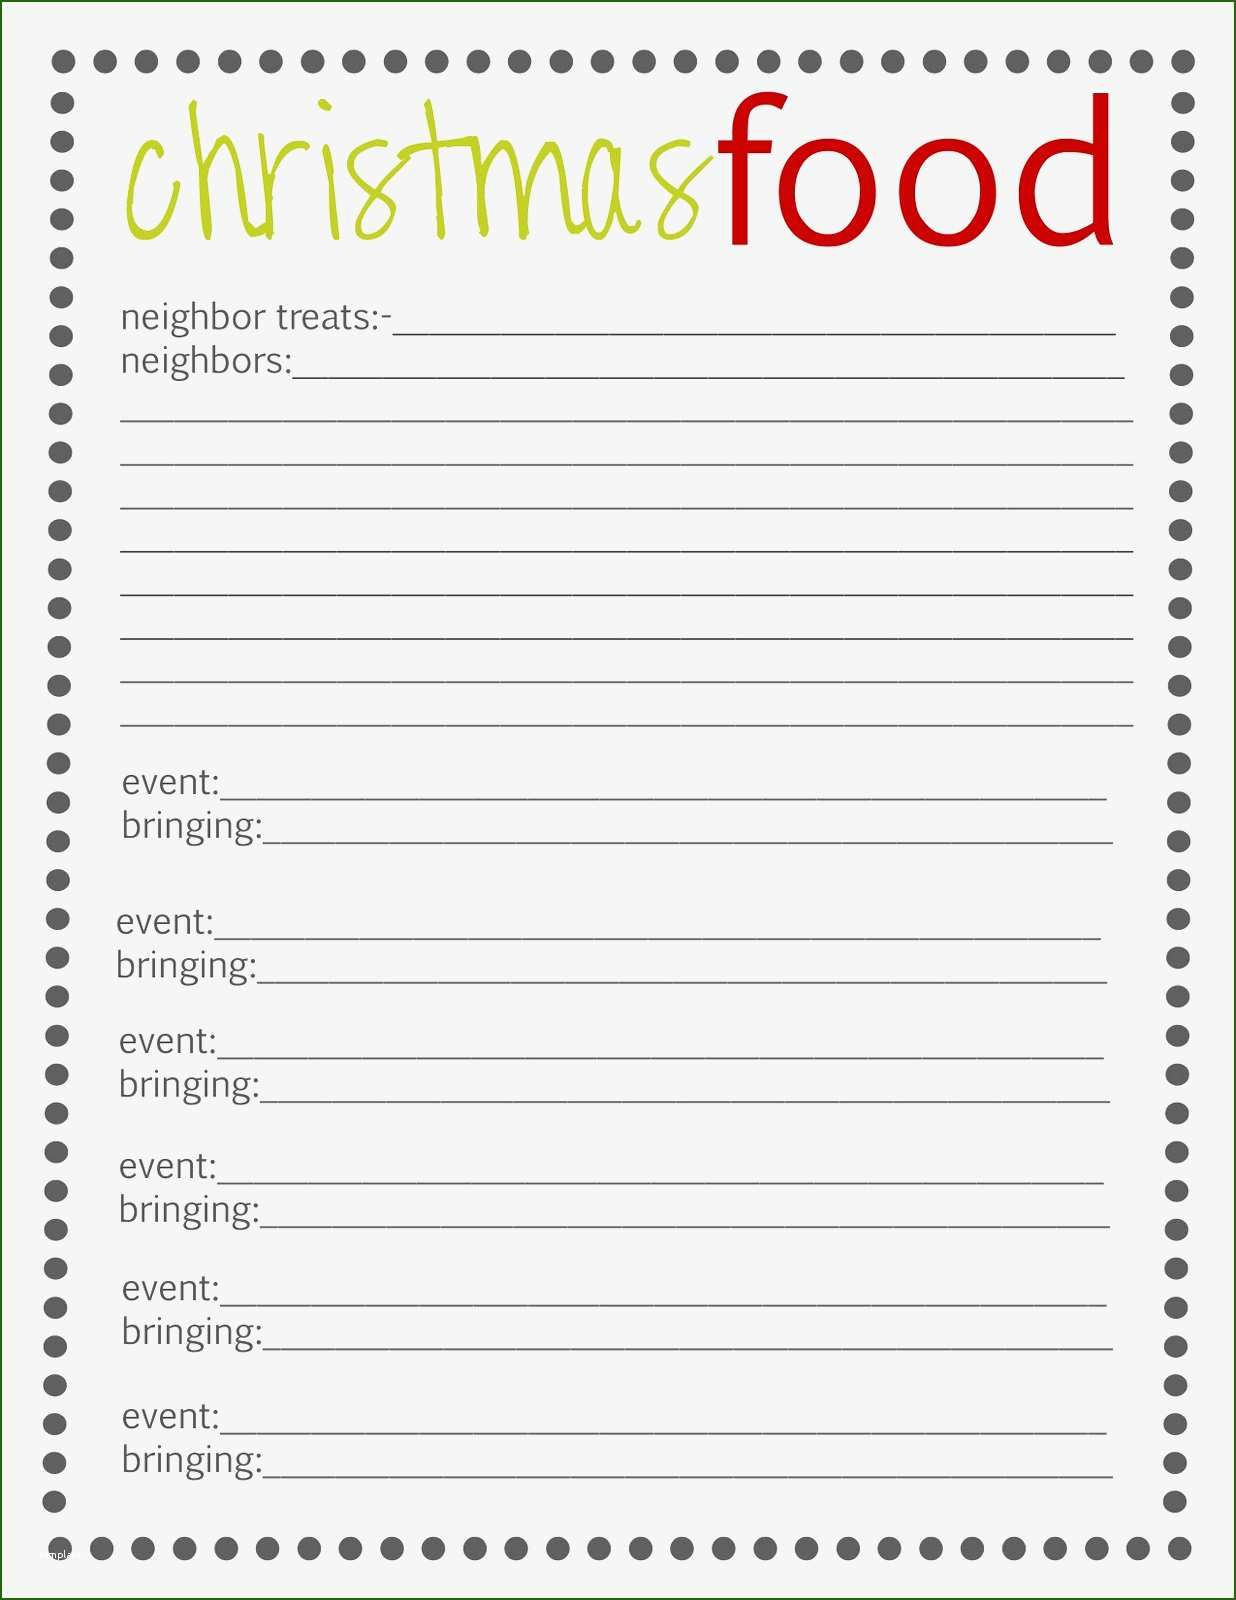 20 Leading Meal Sign Up Sheet Template Christmas Planning Christmas Organization Free Christmas Printables Holiday sign up sheet template